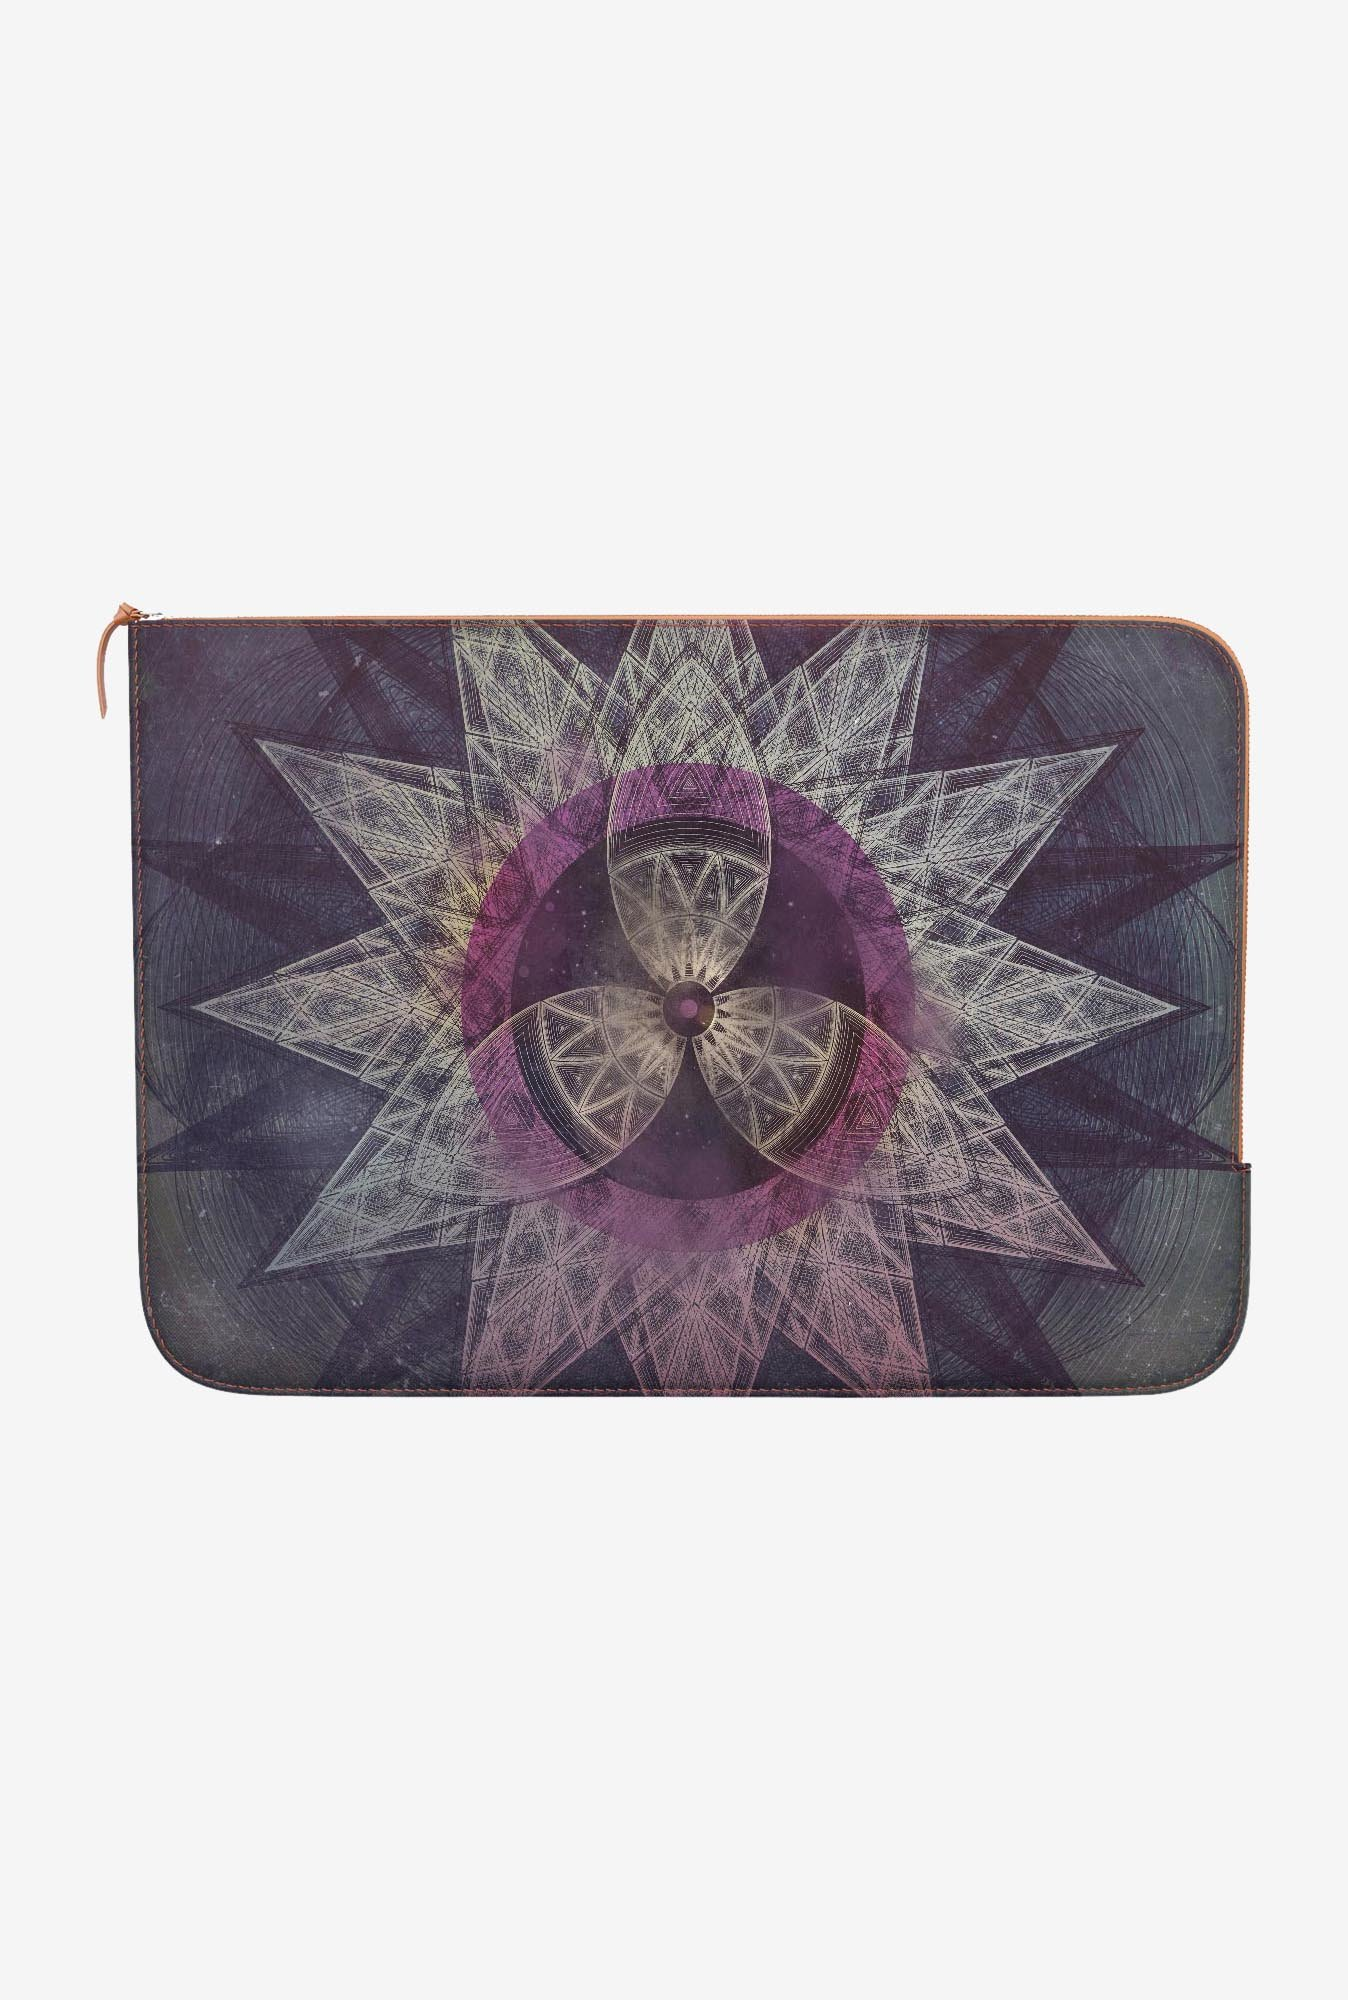 DailyObjects twwllvv myrk MacBook Air 11 Zippered Sleeve